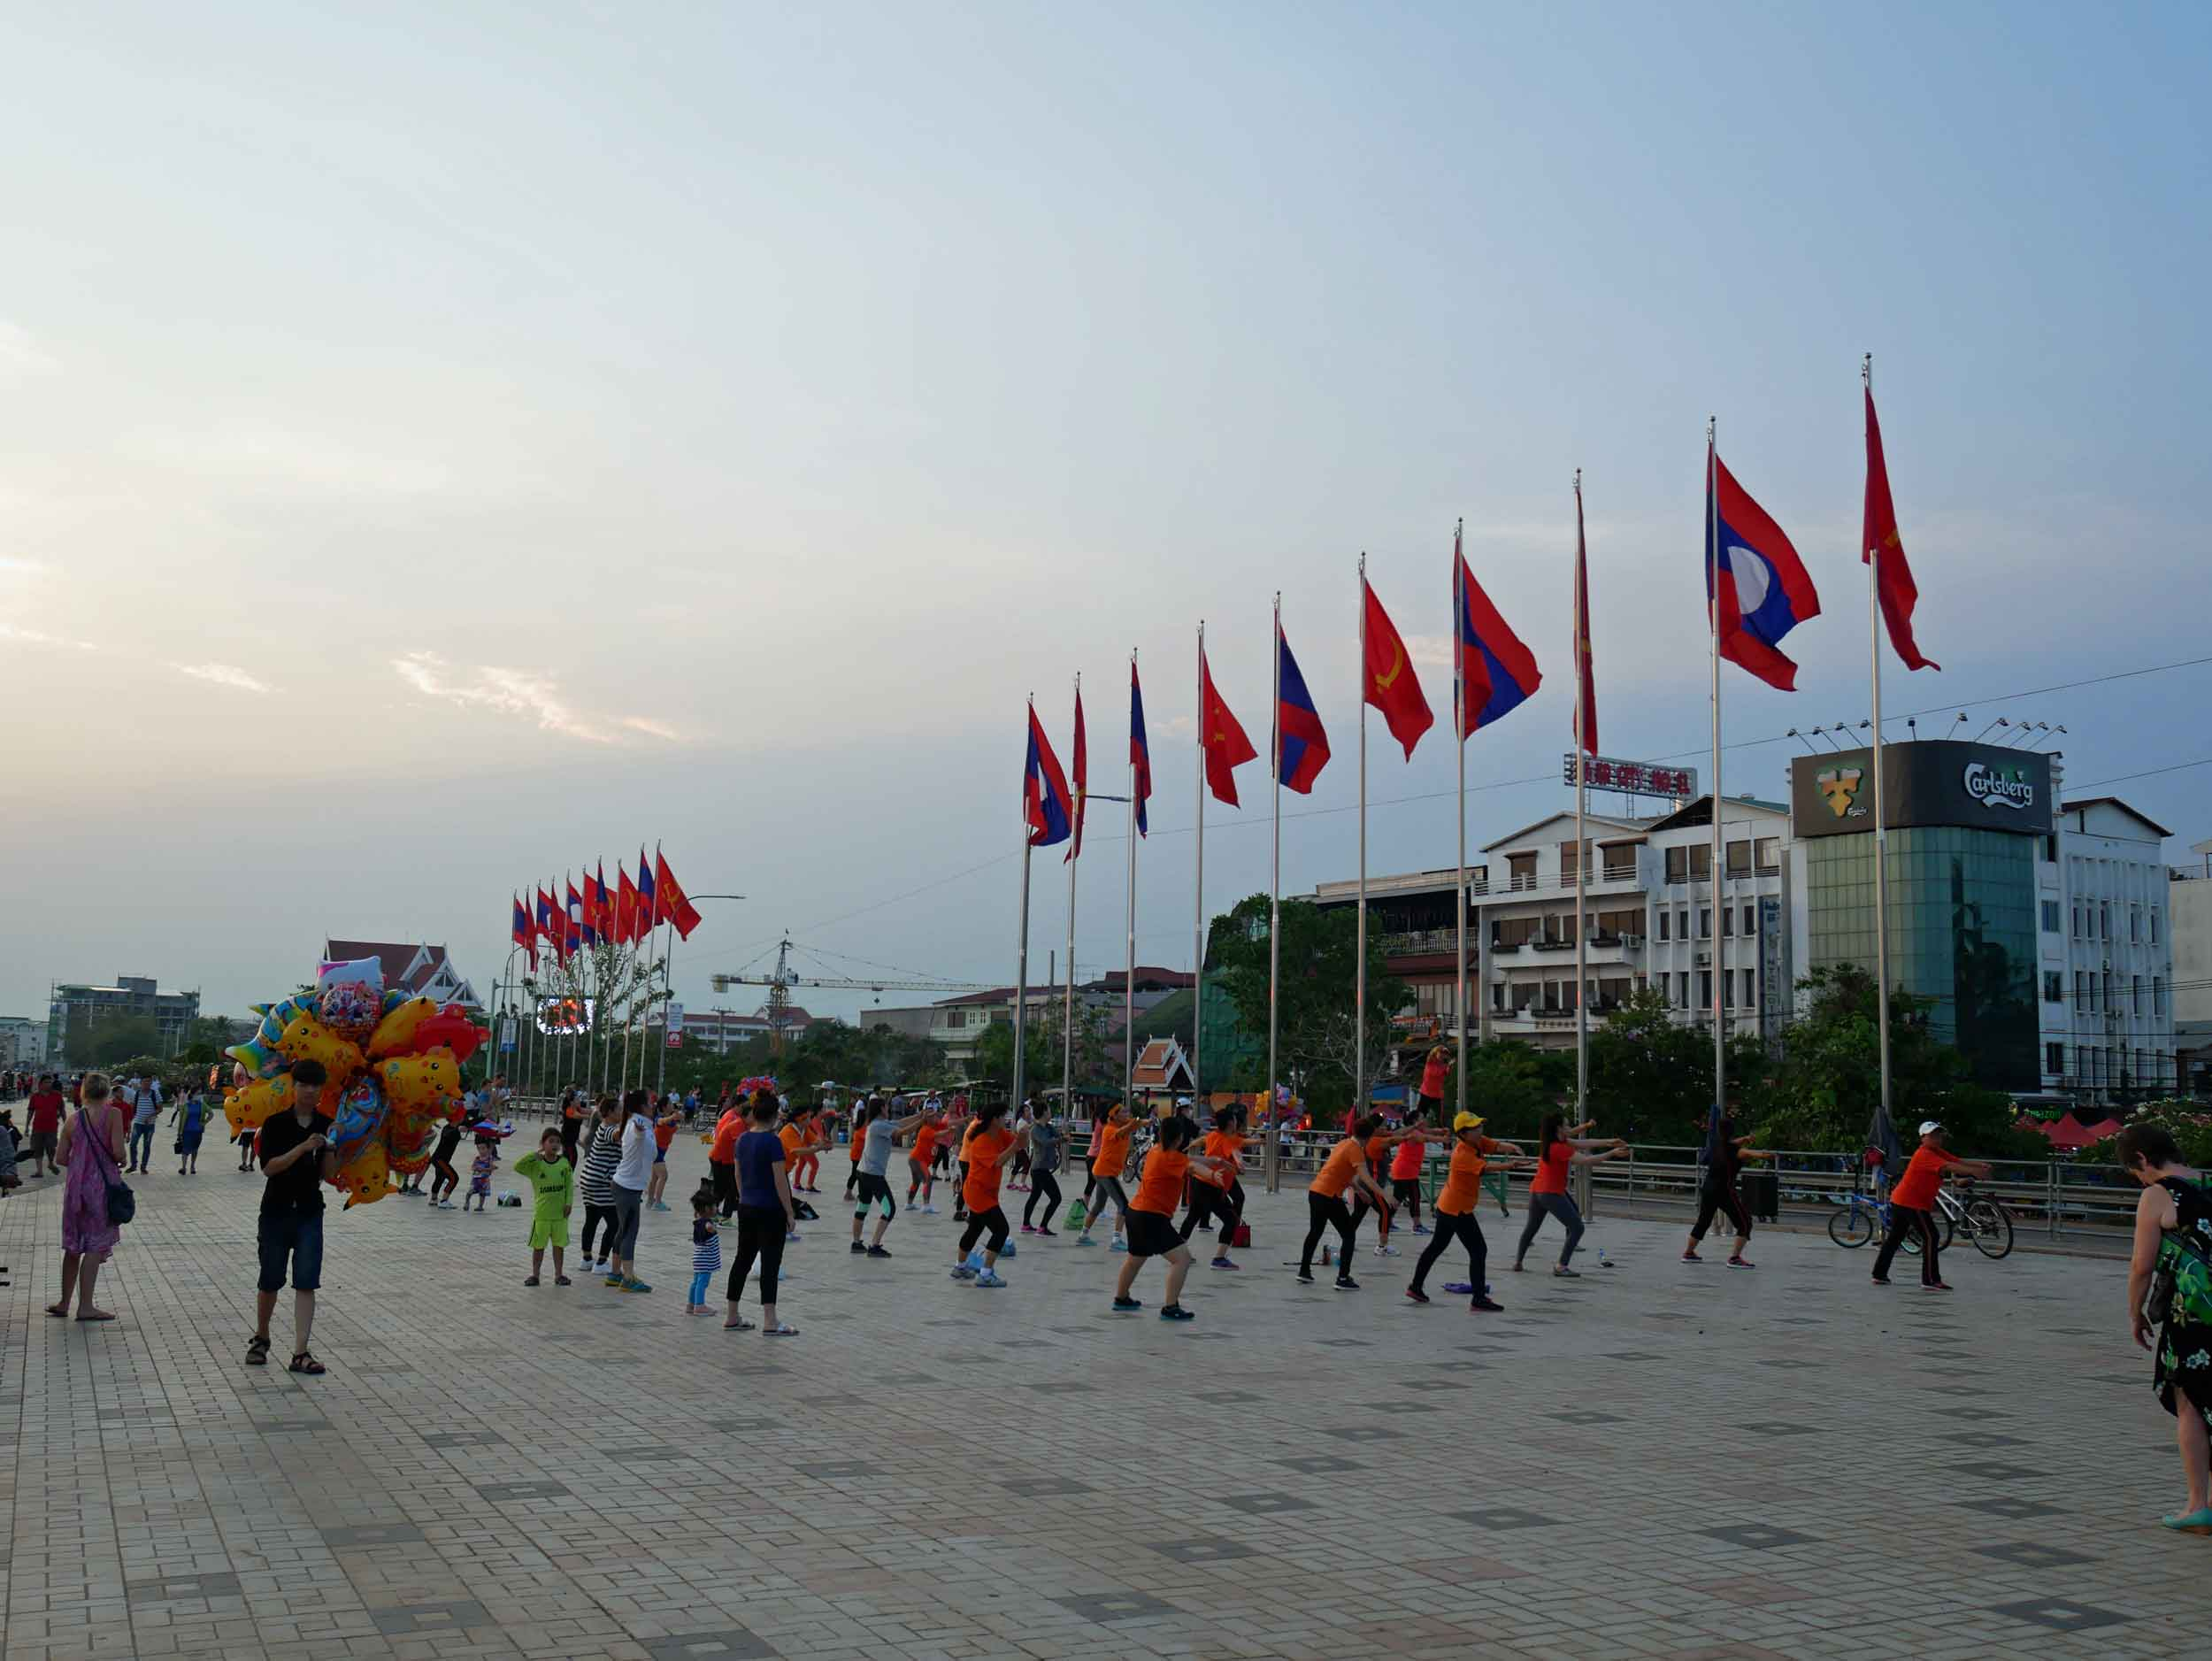 Vientiane, set on the banks of the Mekong River and across from the Thai border, has recently redeveloped its riverfront, which when we visited was full of activity, including exercise groups, food vendors, and couples strolling at sunset (March 30).